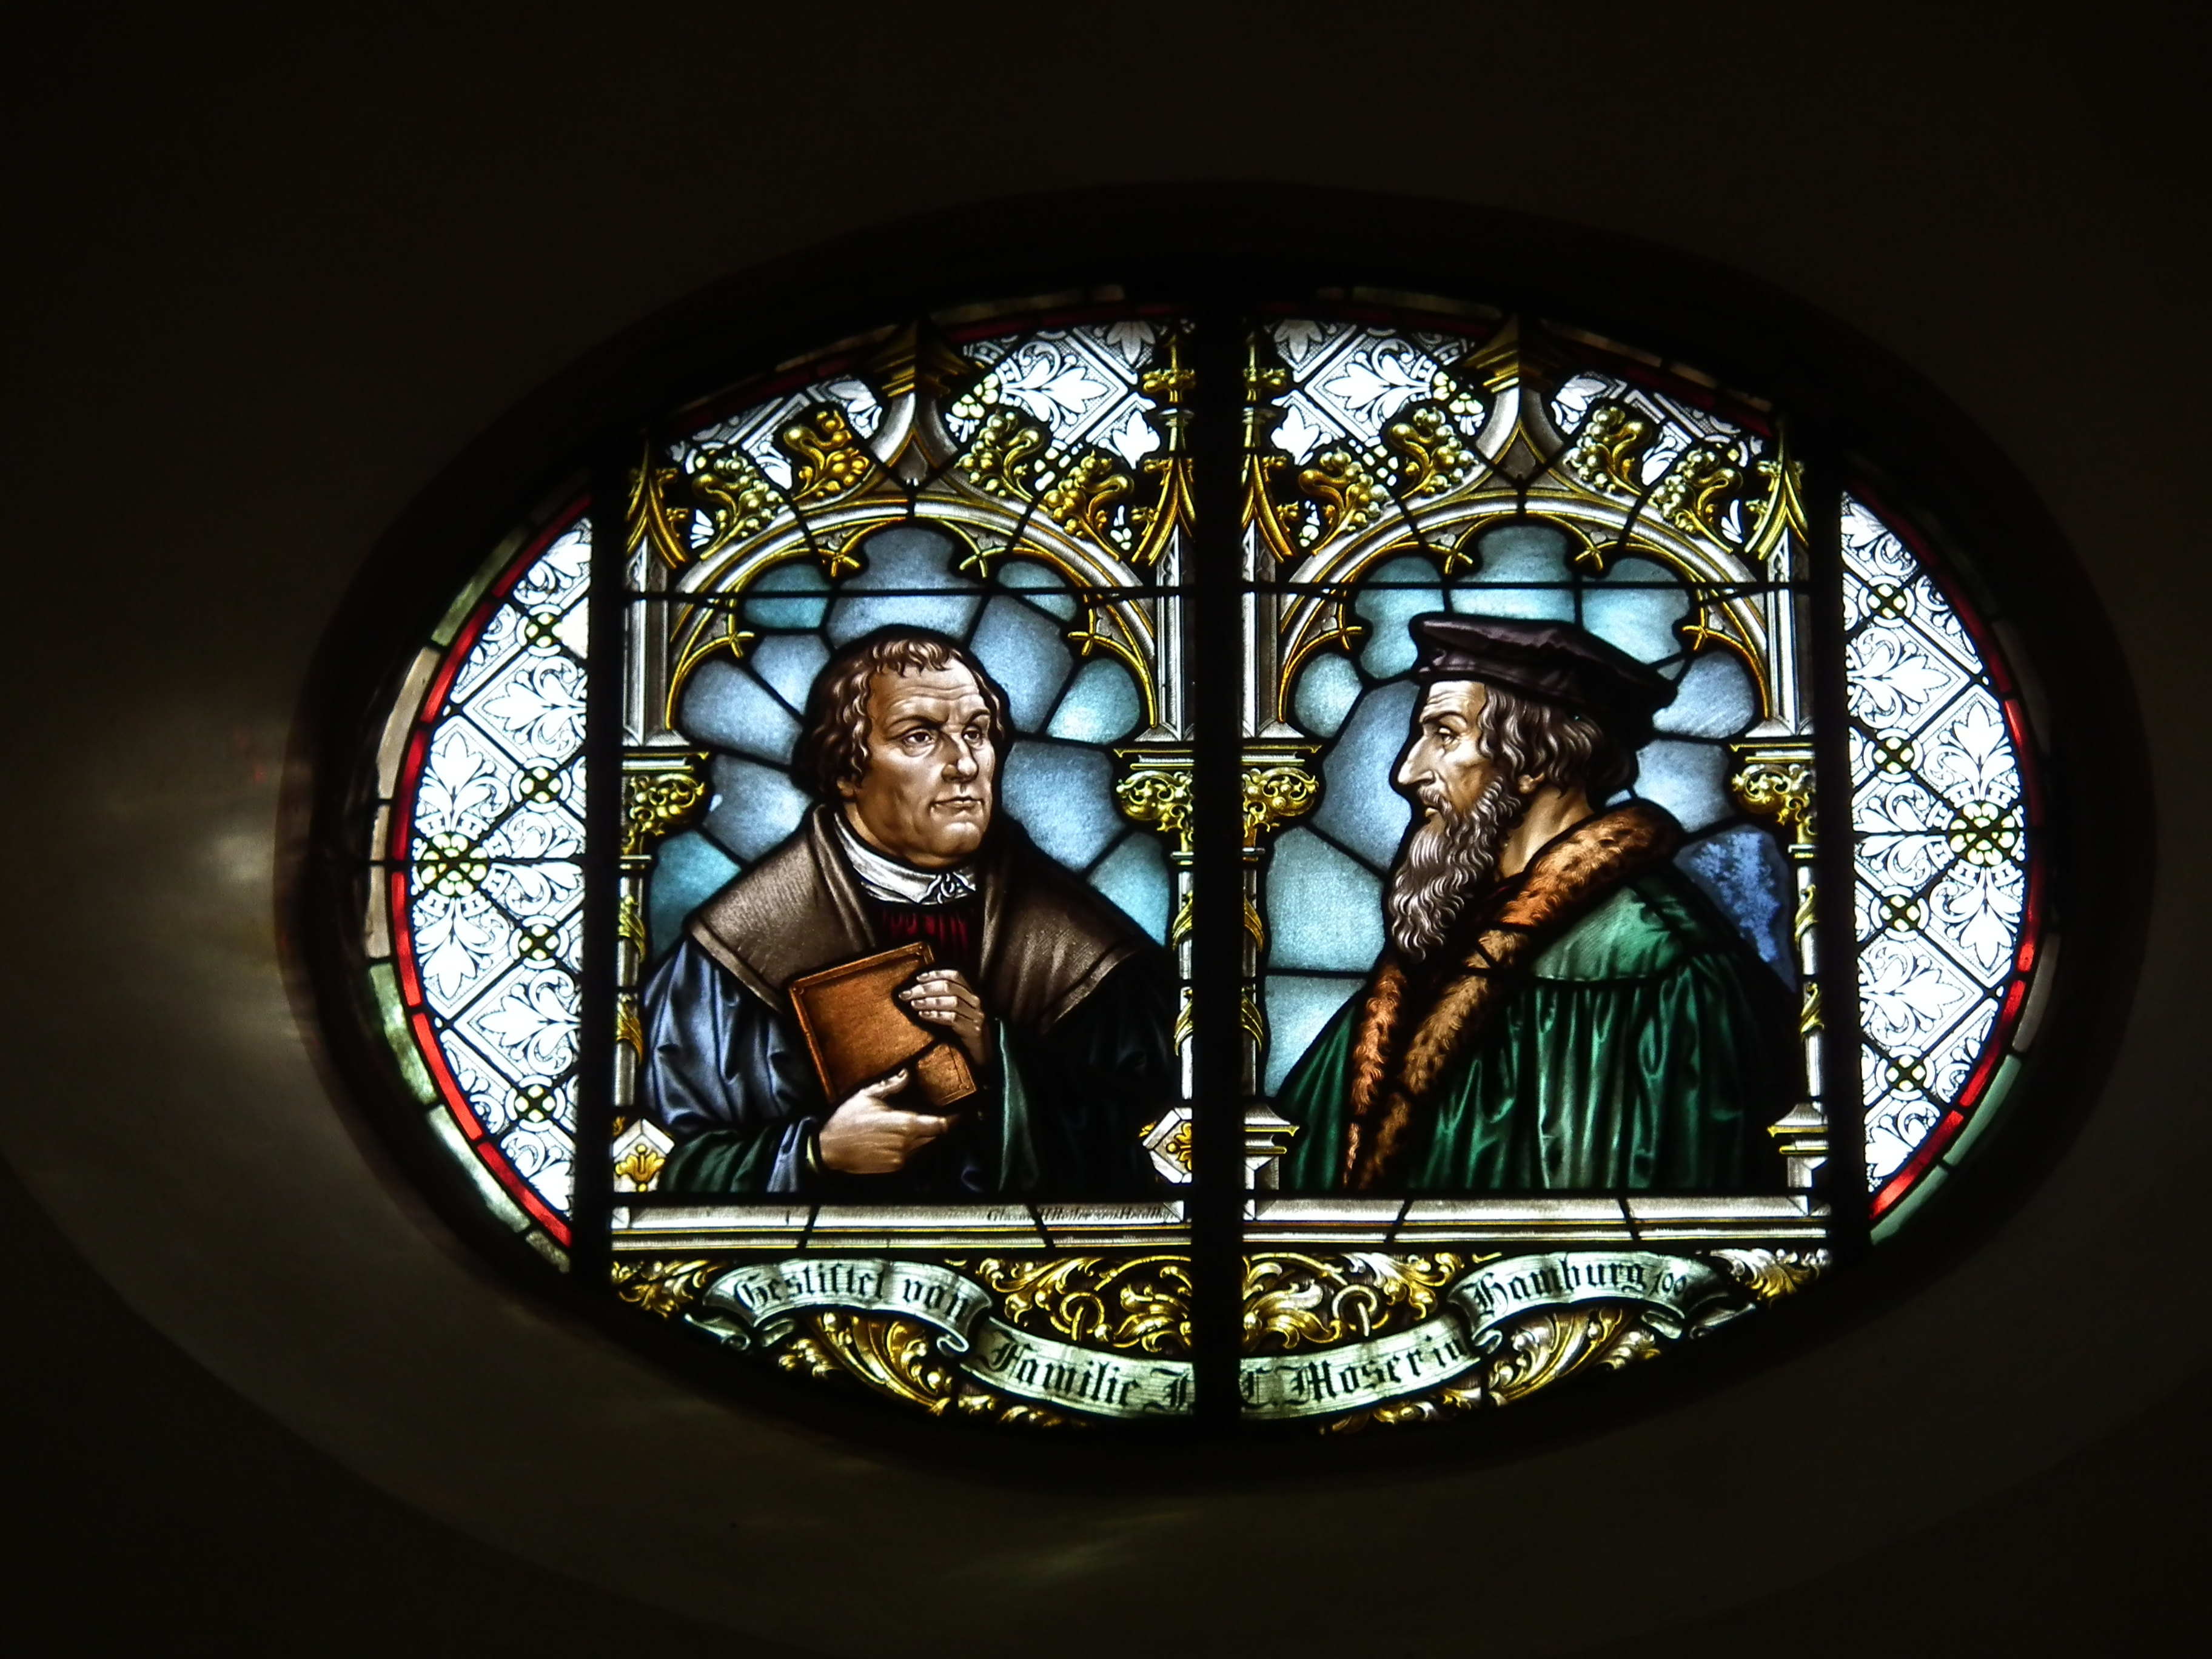 martin luther and john calvin against the roman catholic church